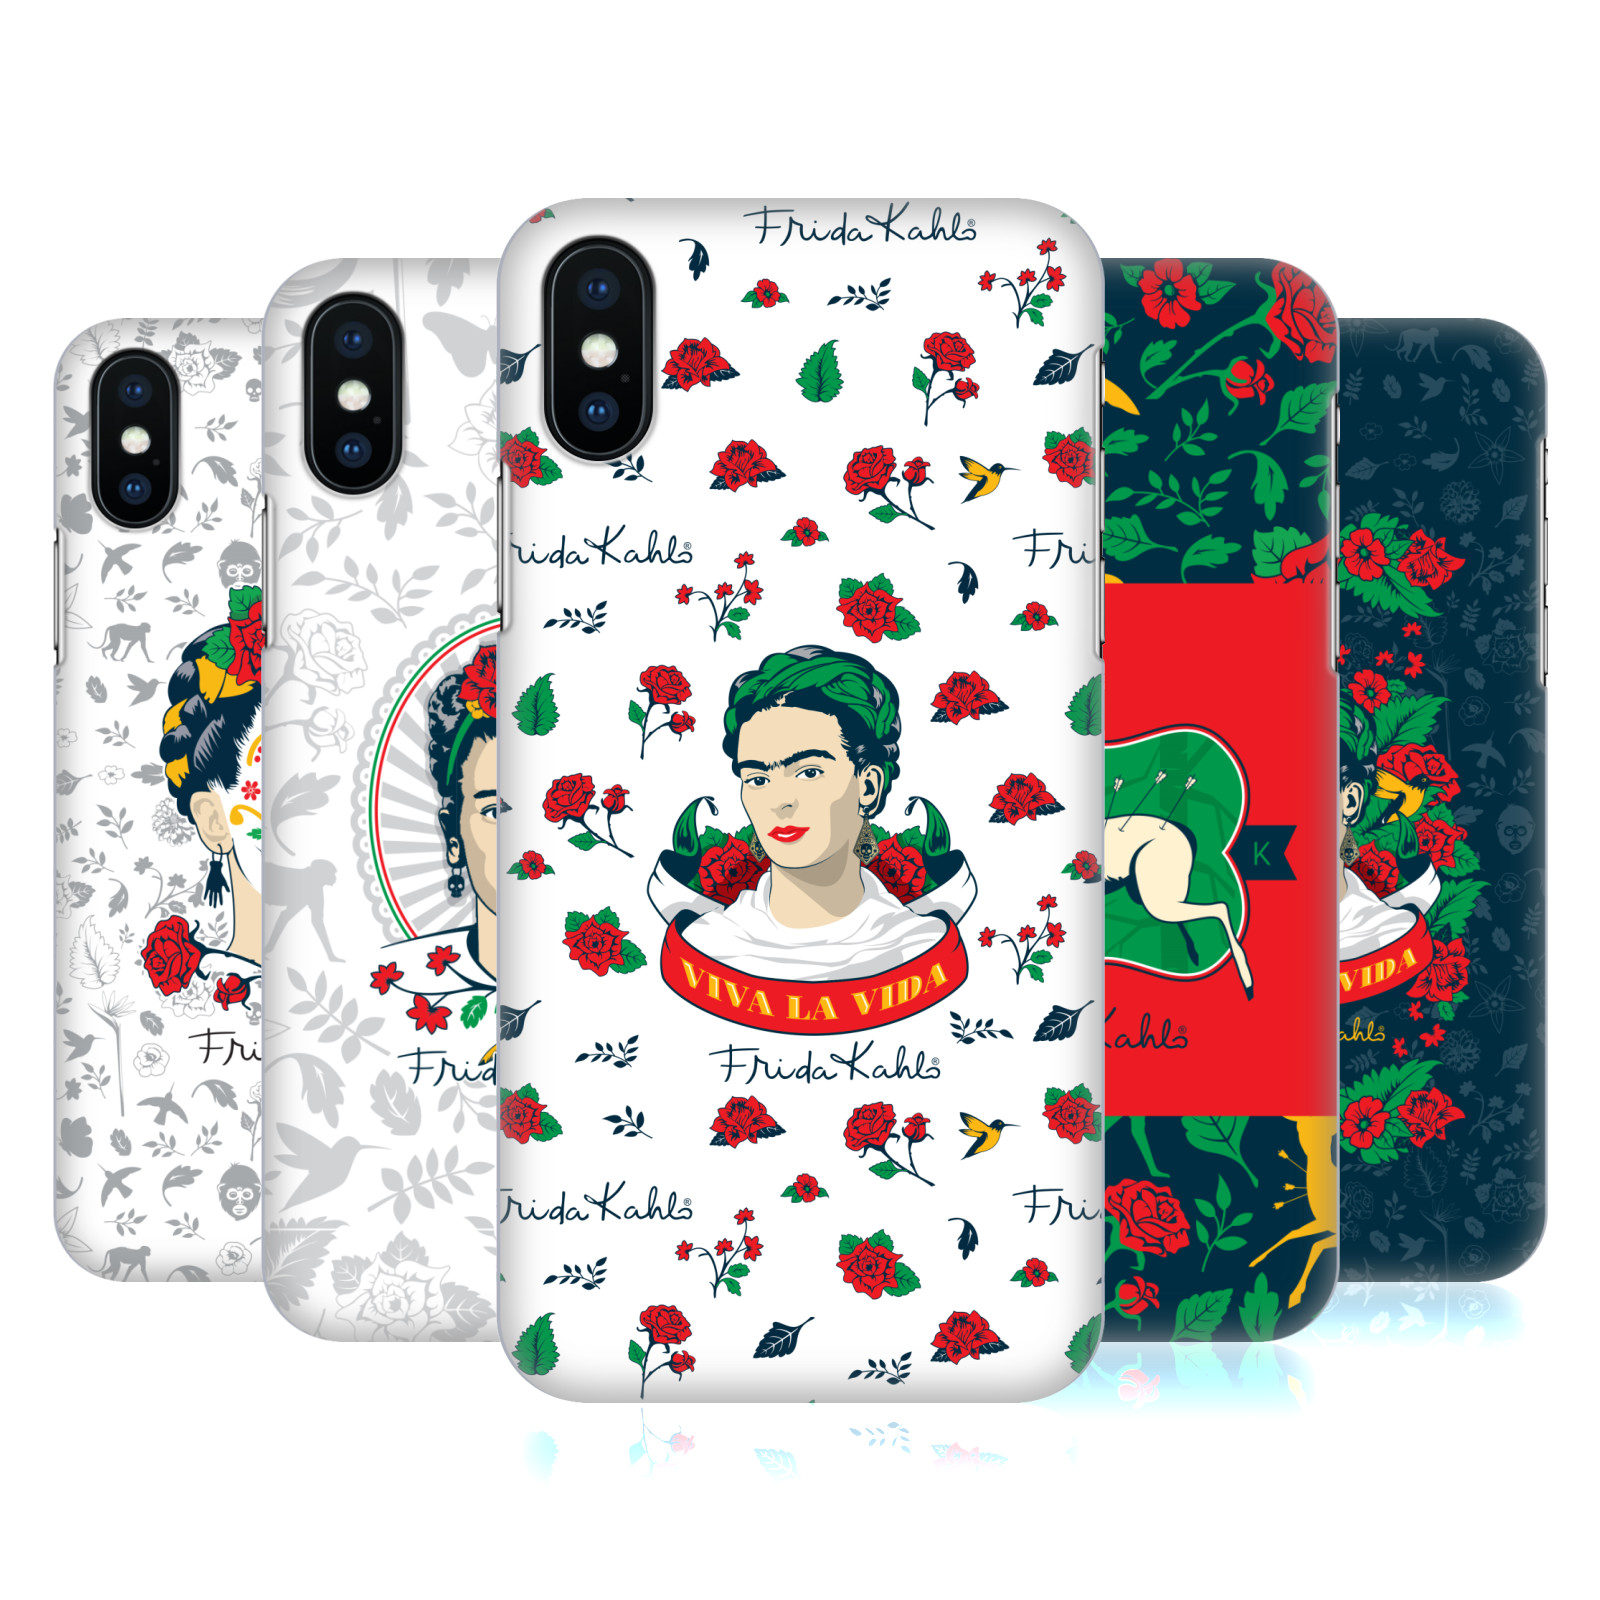 Frida Kahlo Icons